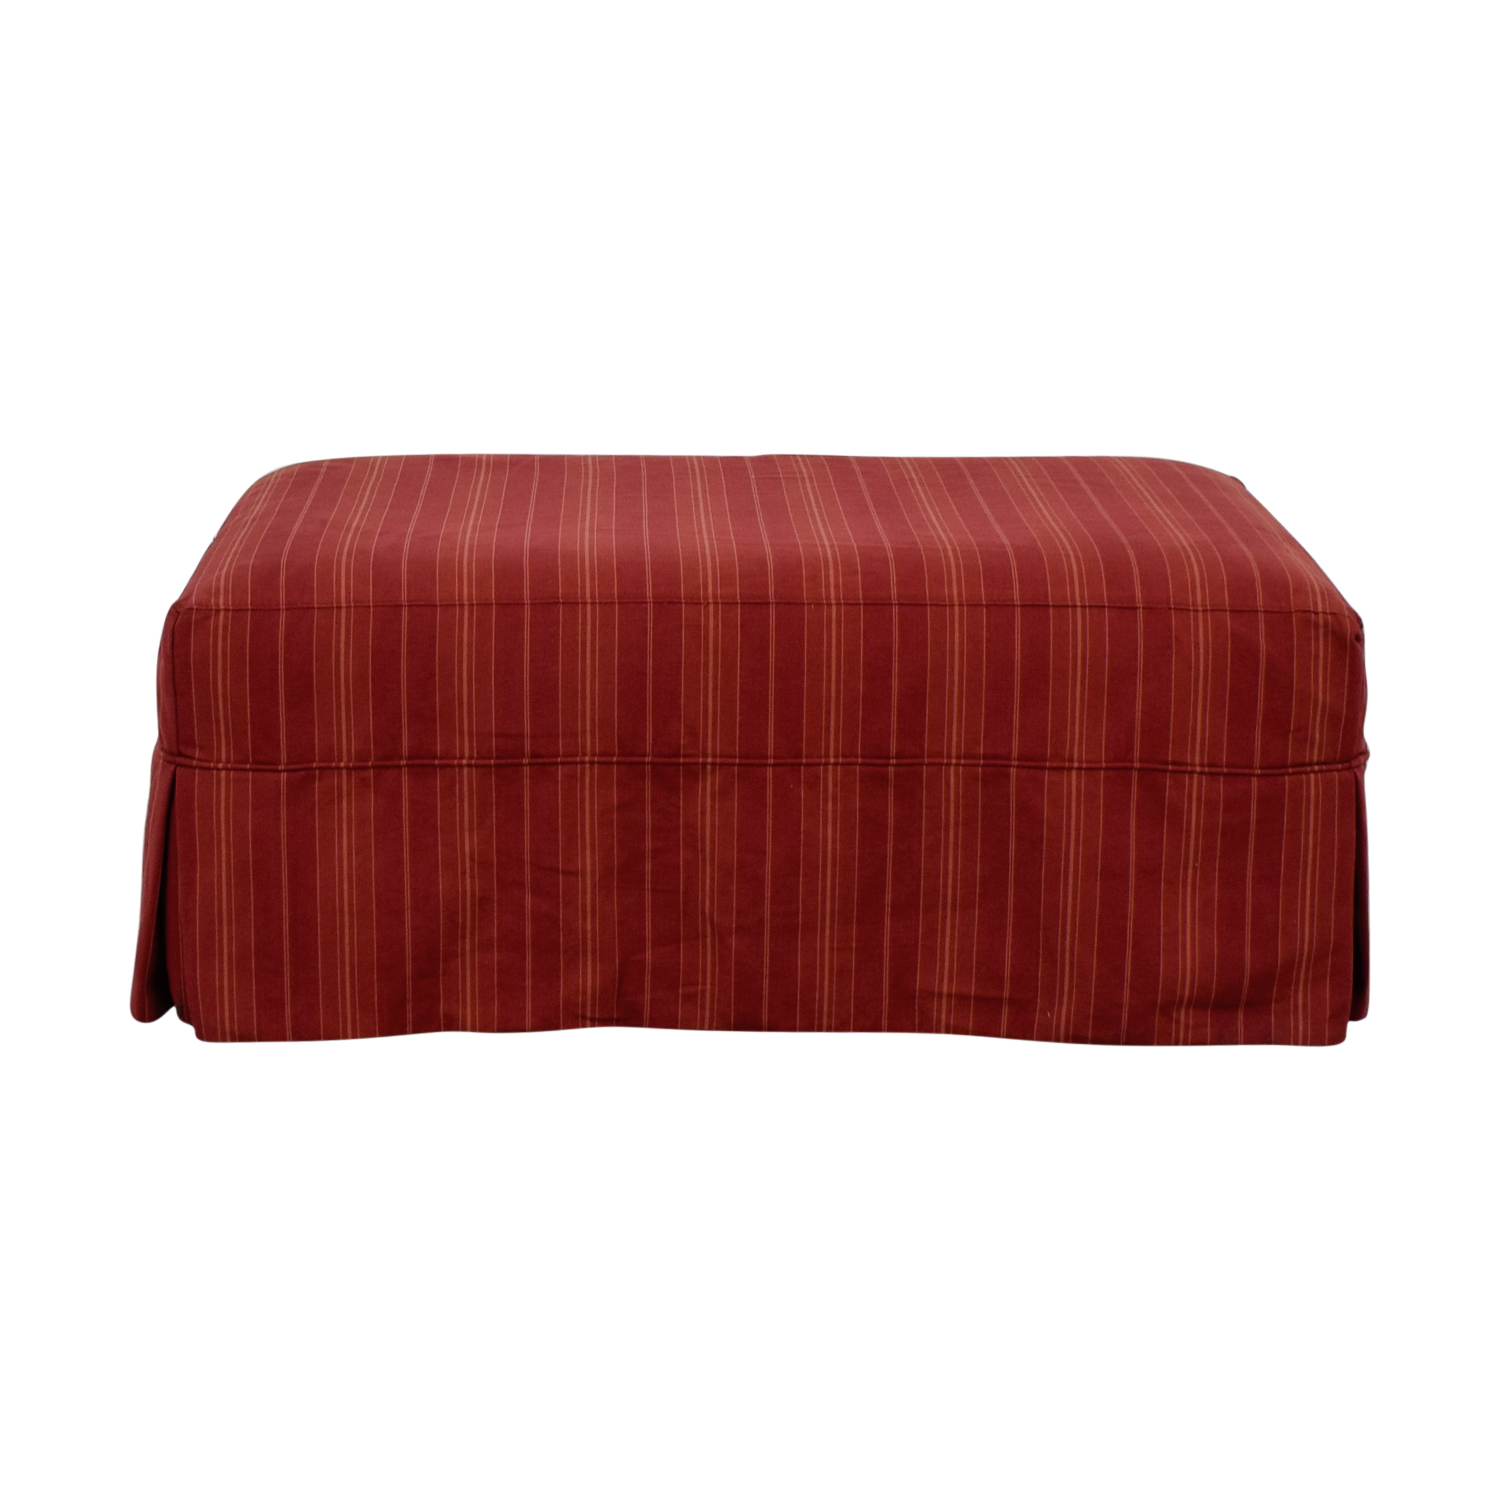 shop Crate & Barrel Crate & Barrel Willow Red and Beige Ottoman on Casters online